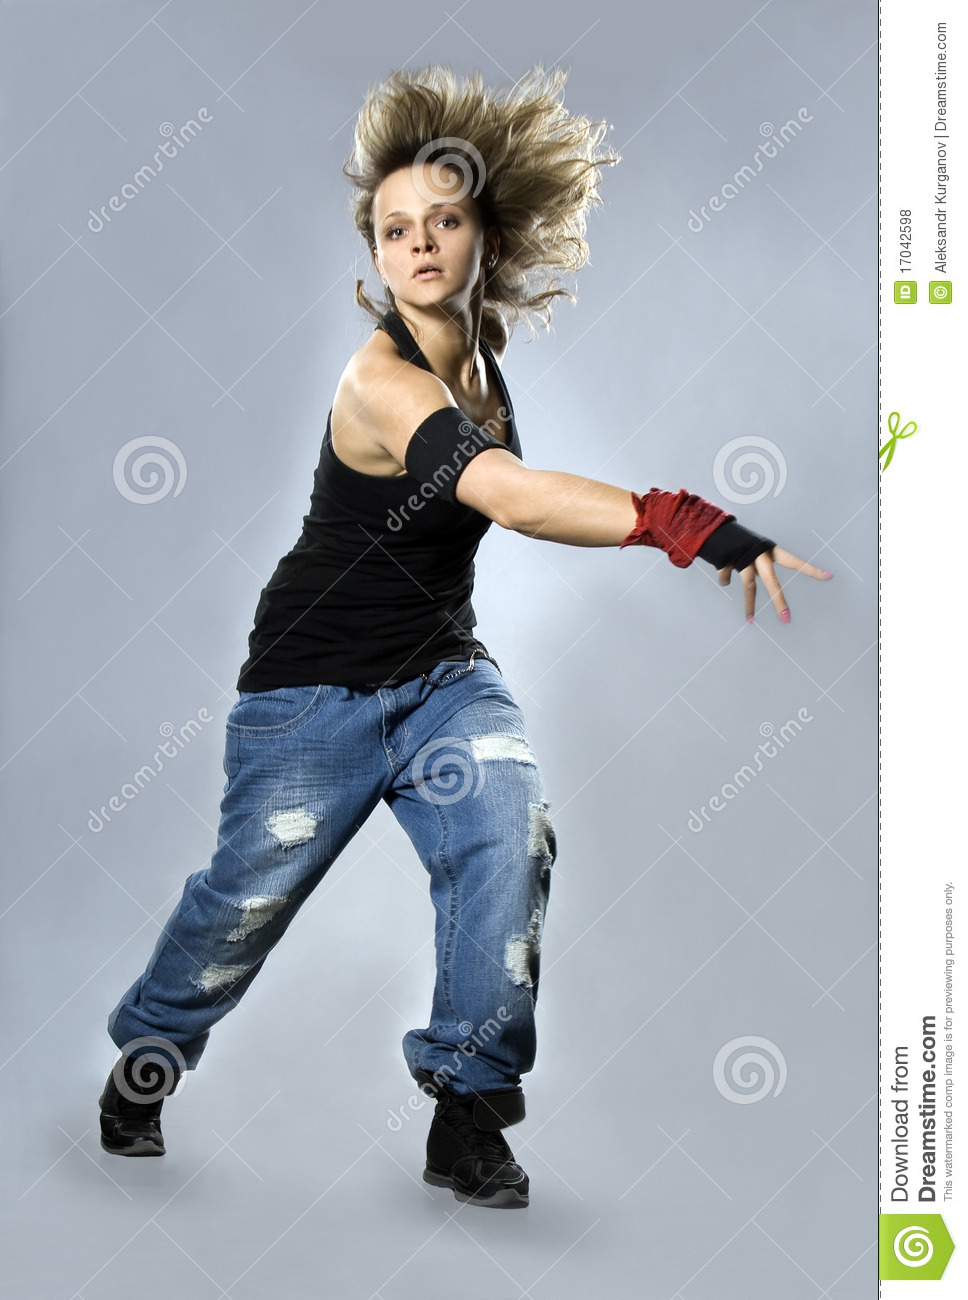 Teenage Girl Dancing Breakdance In Action Royalty Free Stock Photos ...